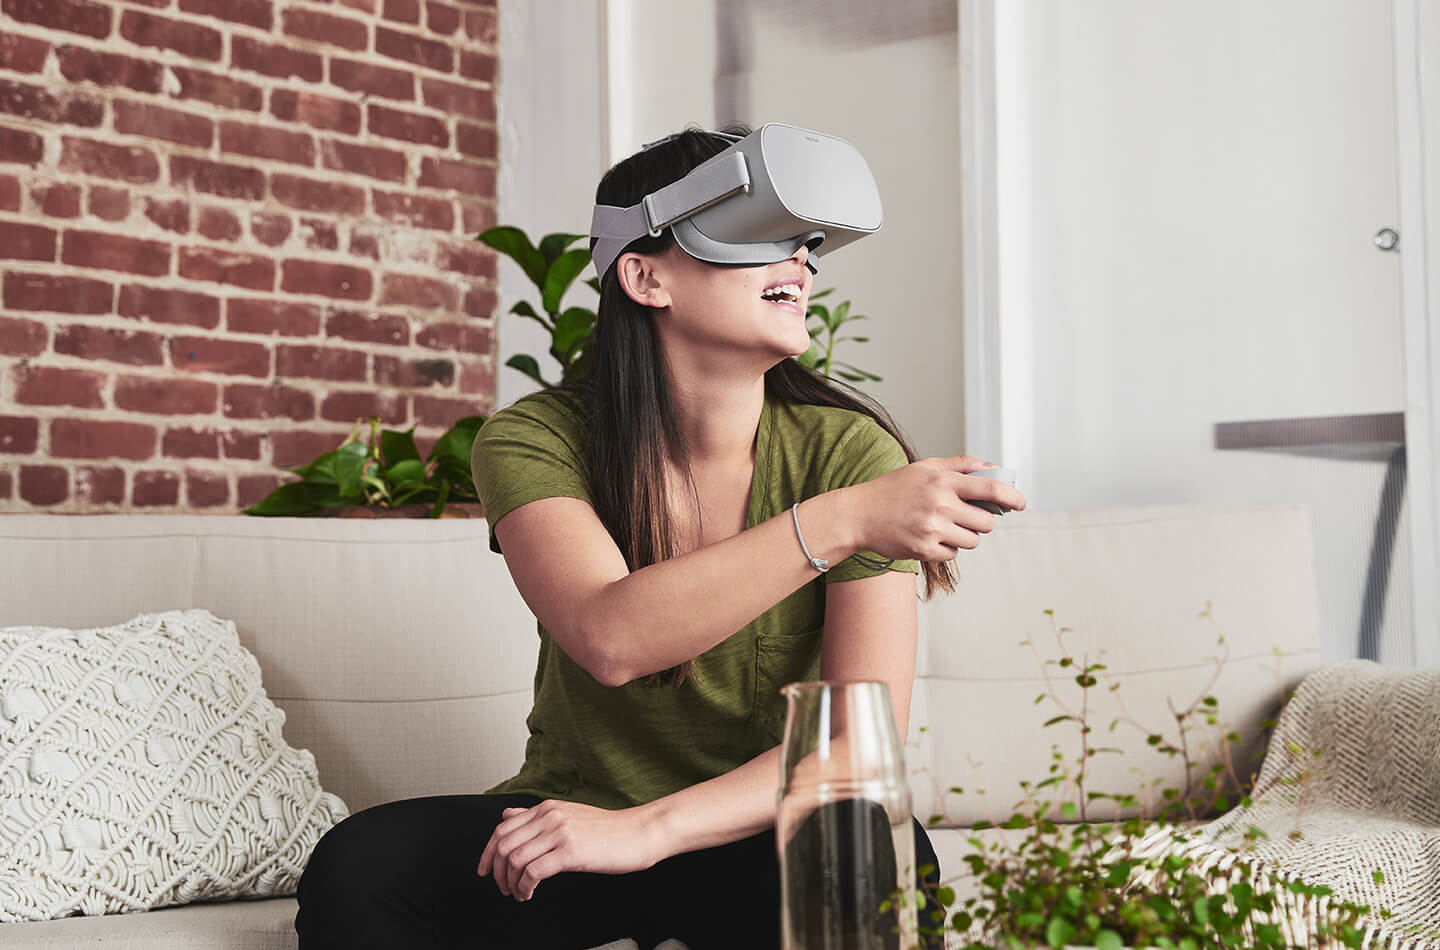 Oculus Go Amazon